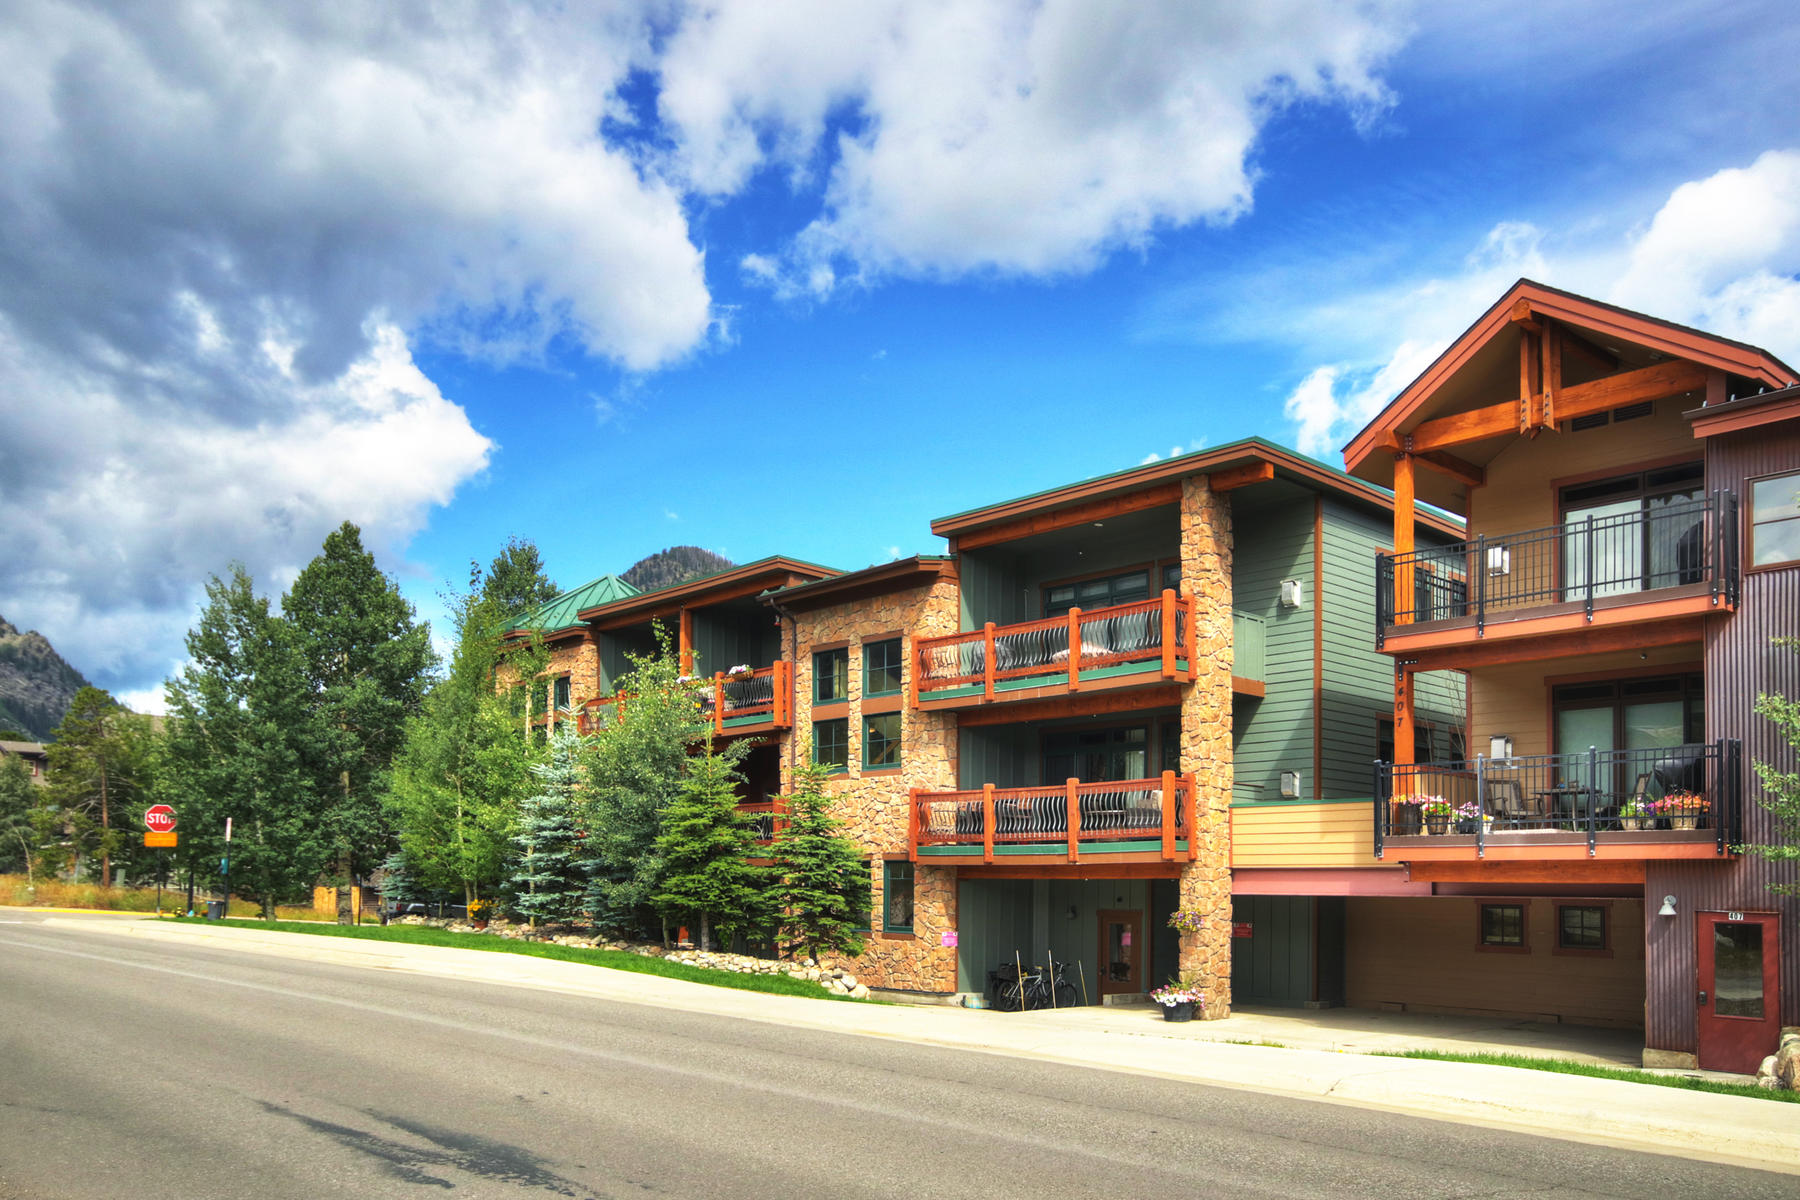 Condominiums para Venda às Condos off Main #3 156 S 4th Ave S #3, Frisco, Colorado 80443 Estados Unidos